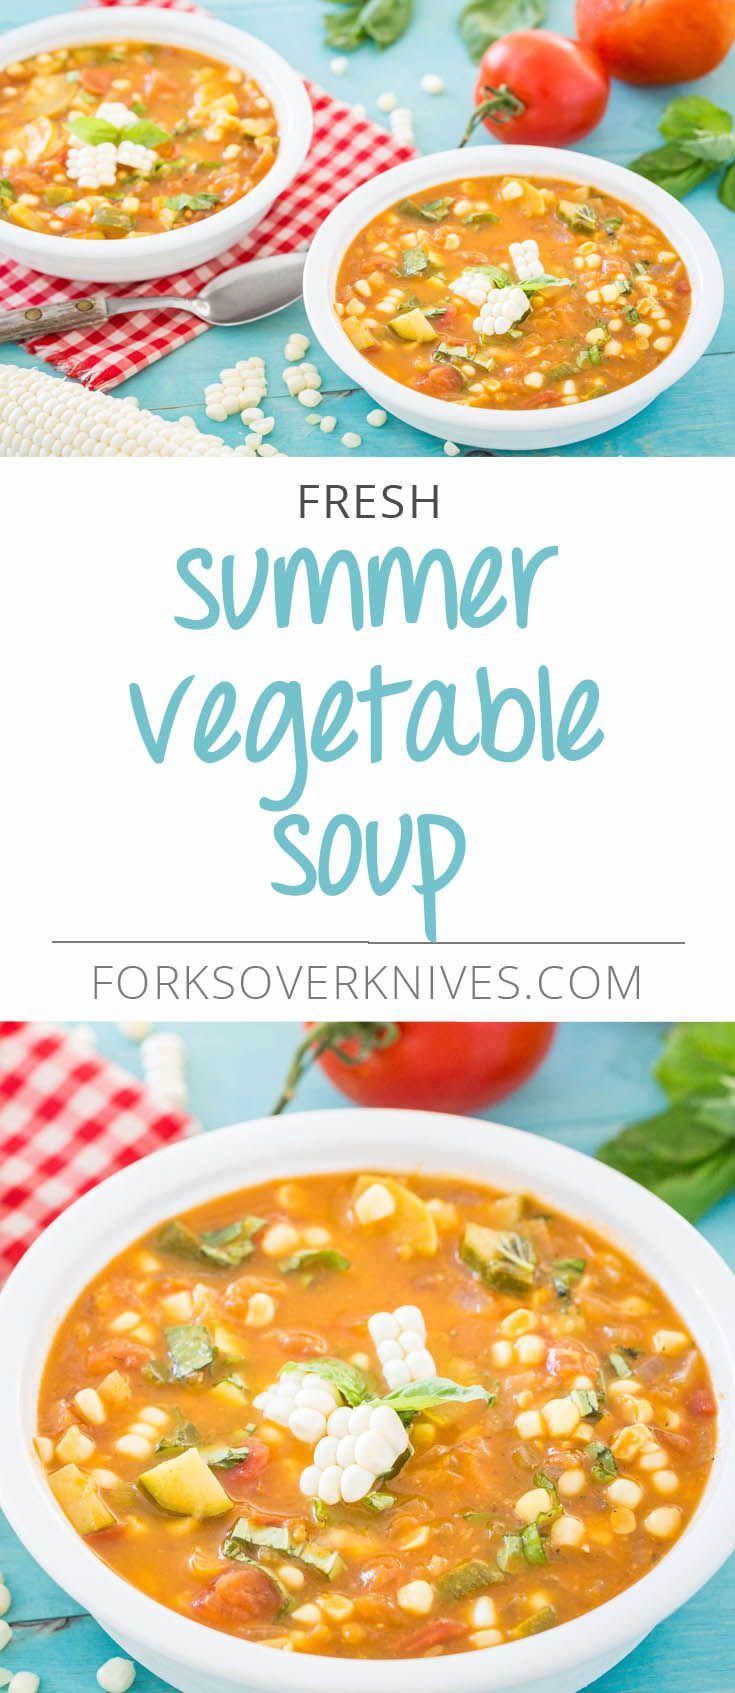 During the summer months, all of the vegetables in this soup can (and should!) be found fresh. Tomatoes, squash, and corn will be at their peak, and their fresh flavors will really shine through in this dish. FromForks Over Knives—The...  Read more